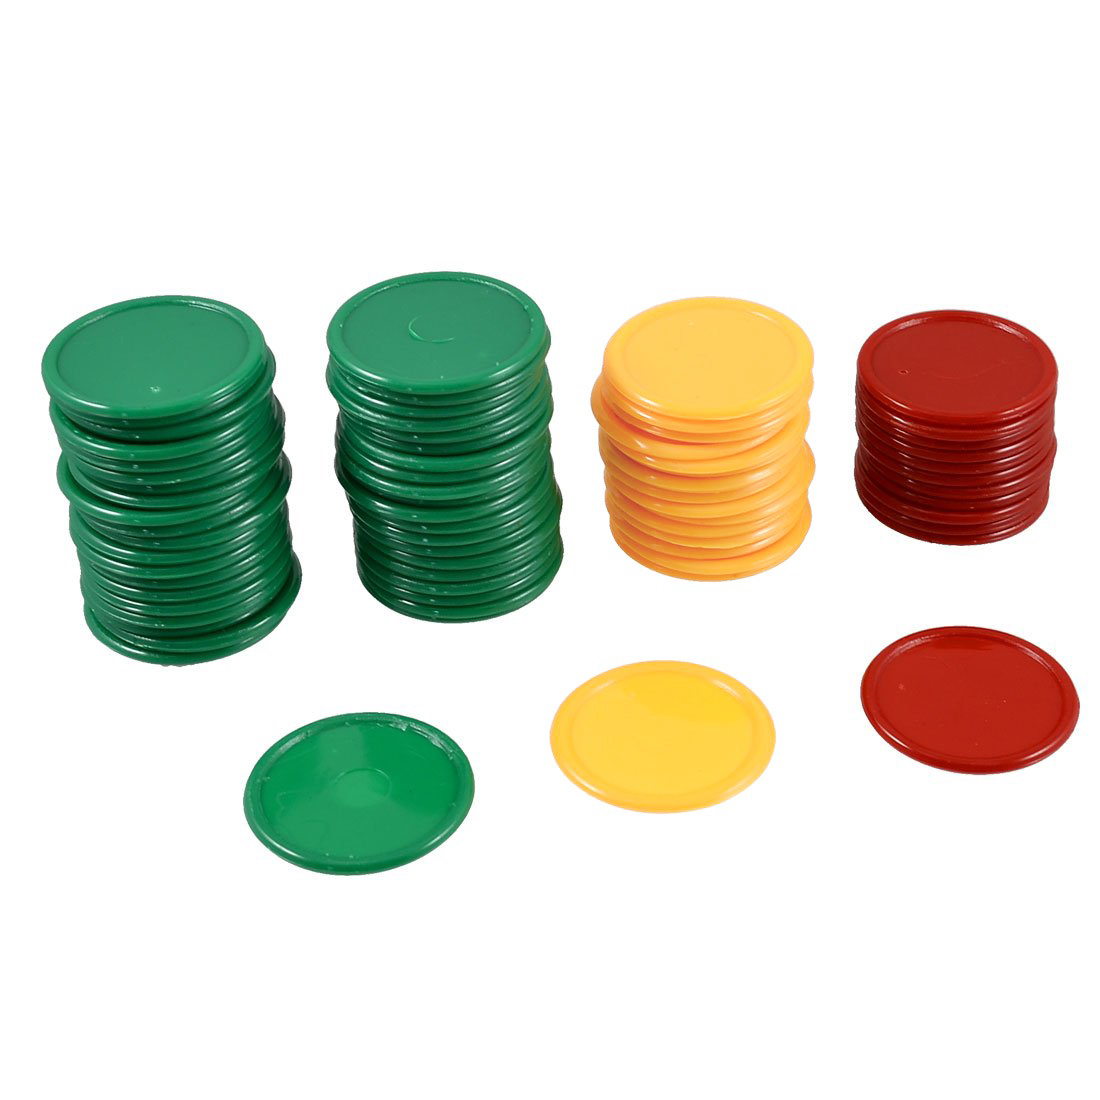 Poke Live Dcf Shapes: Popular Chips Poker-Buy Cheap Chips Poker Lots From China